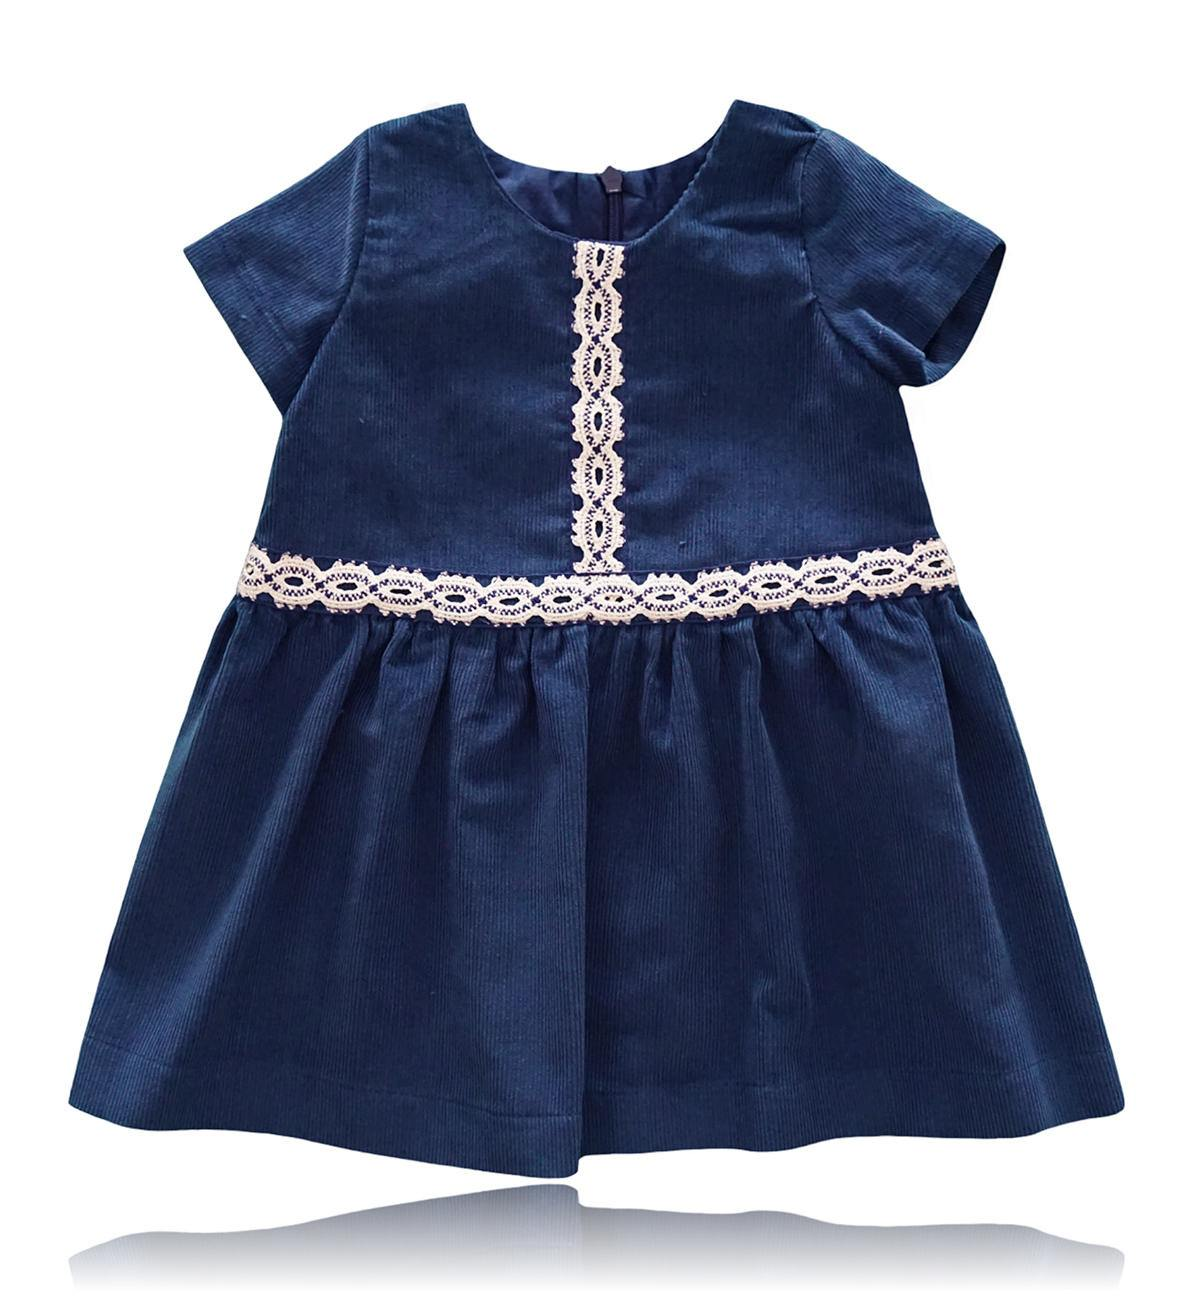 Spanish baby clothes | baby Dress | Navy blue corduroy dress |babymaC  - 1